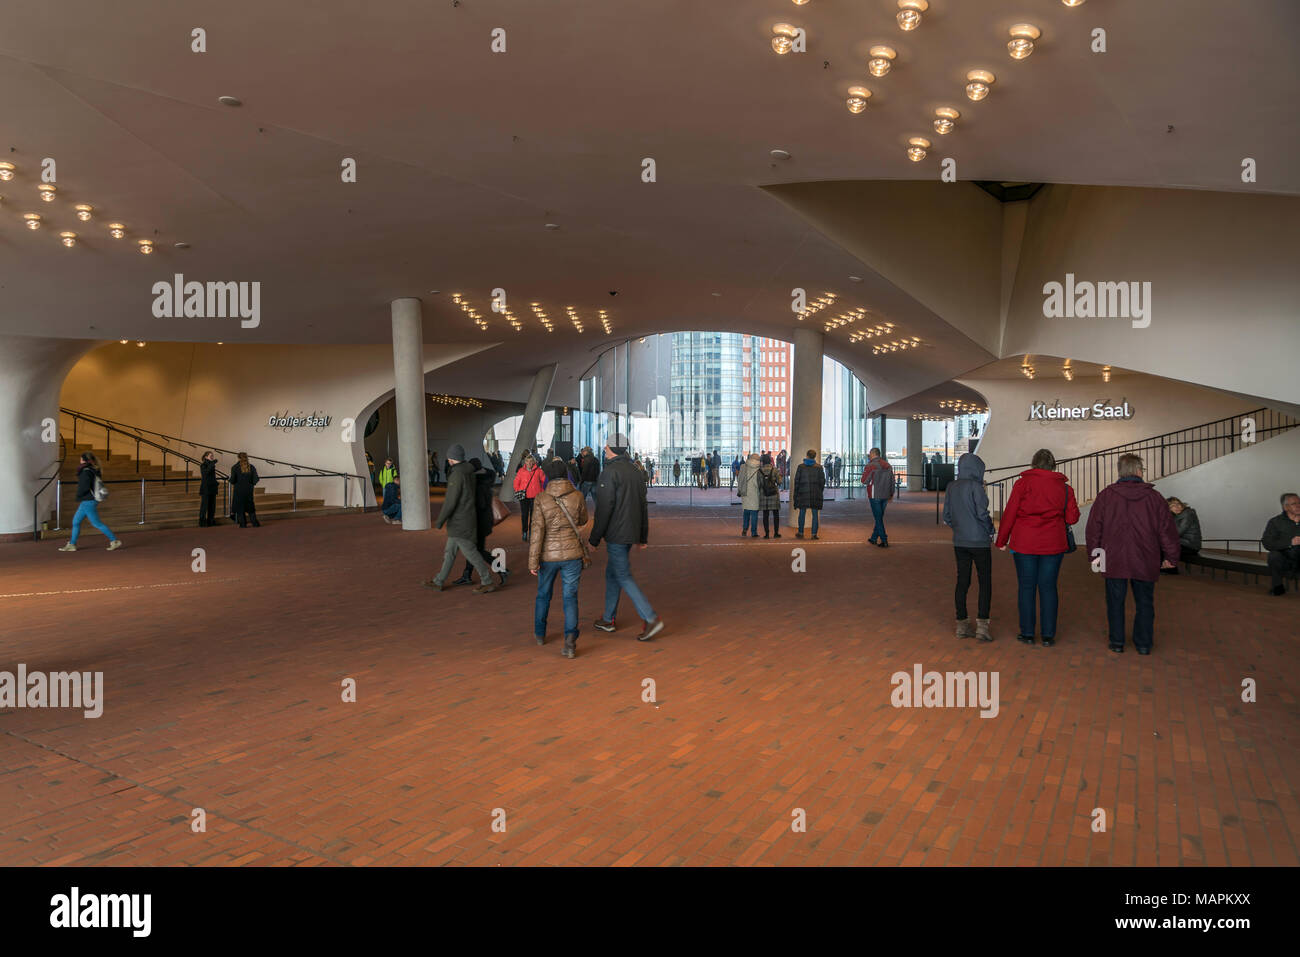 Besucher in der Elbphilharmonie, Freie Hansestadt Hamburg, Deutschland |  Visitors at the Elbe Philharmonic Hall, Plaza, Hamburg, Germany, Europe Stock Photo